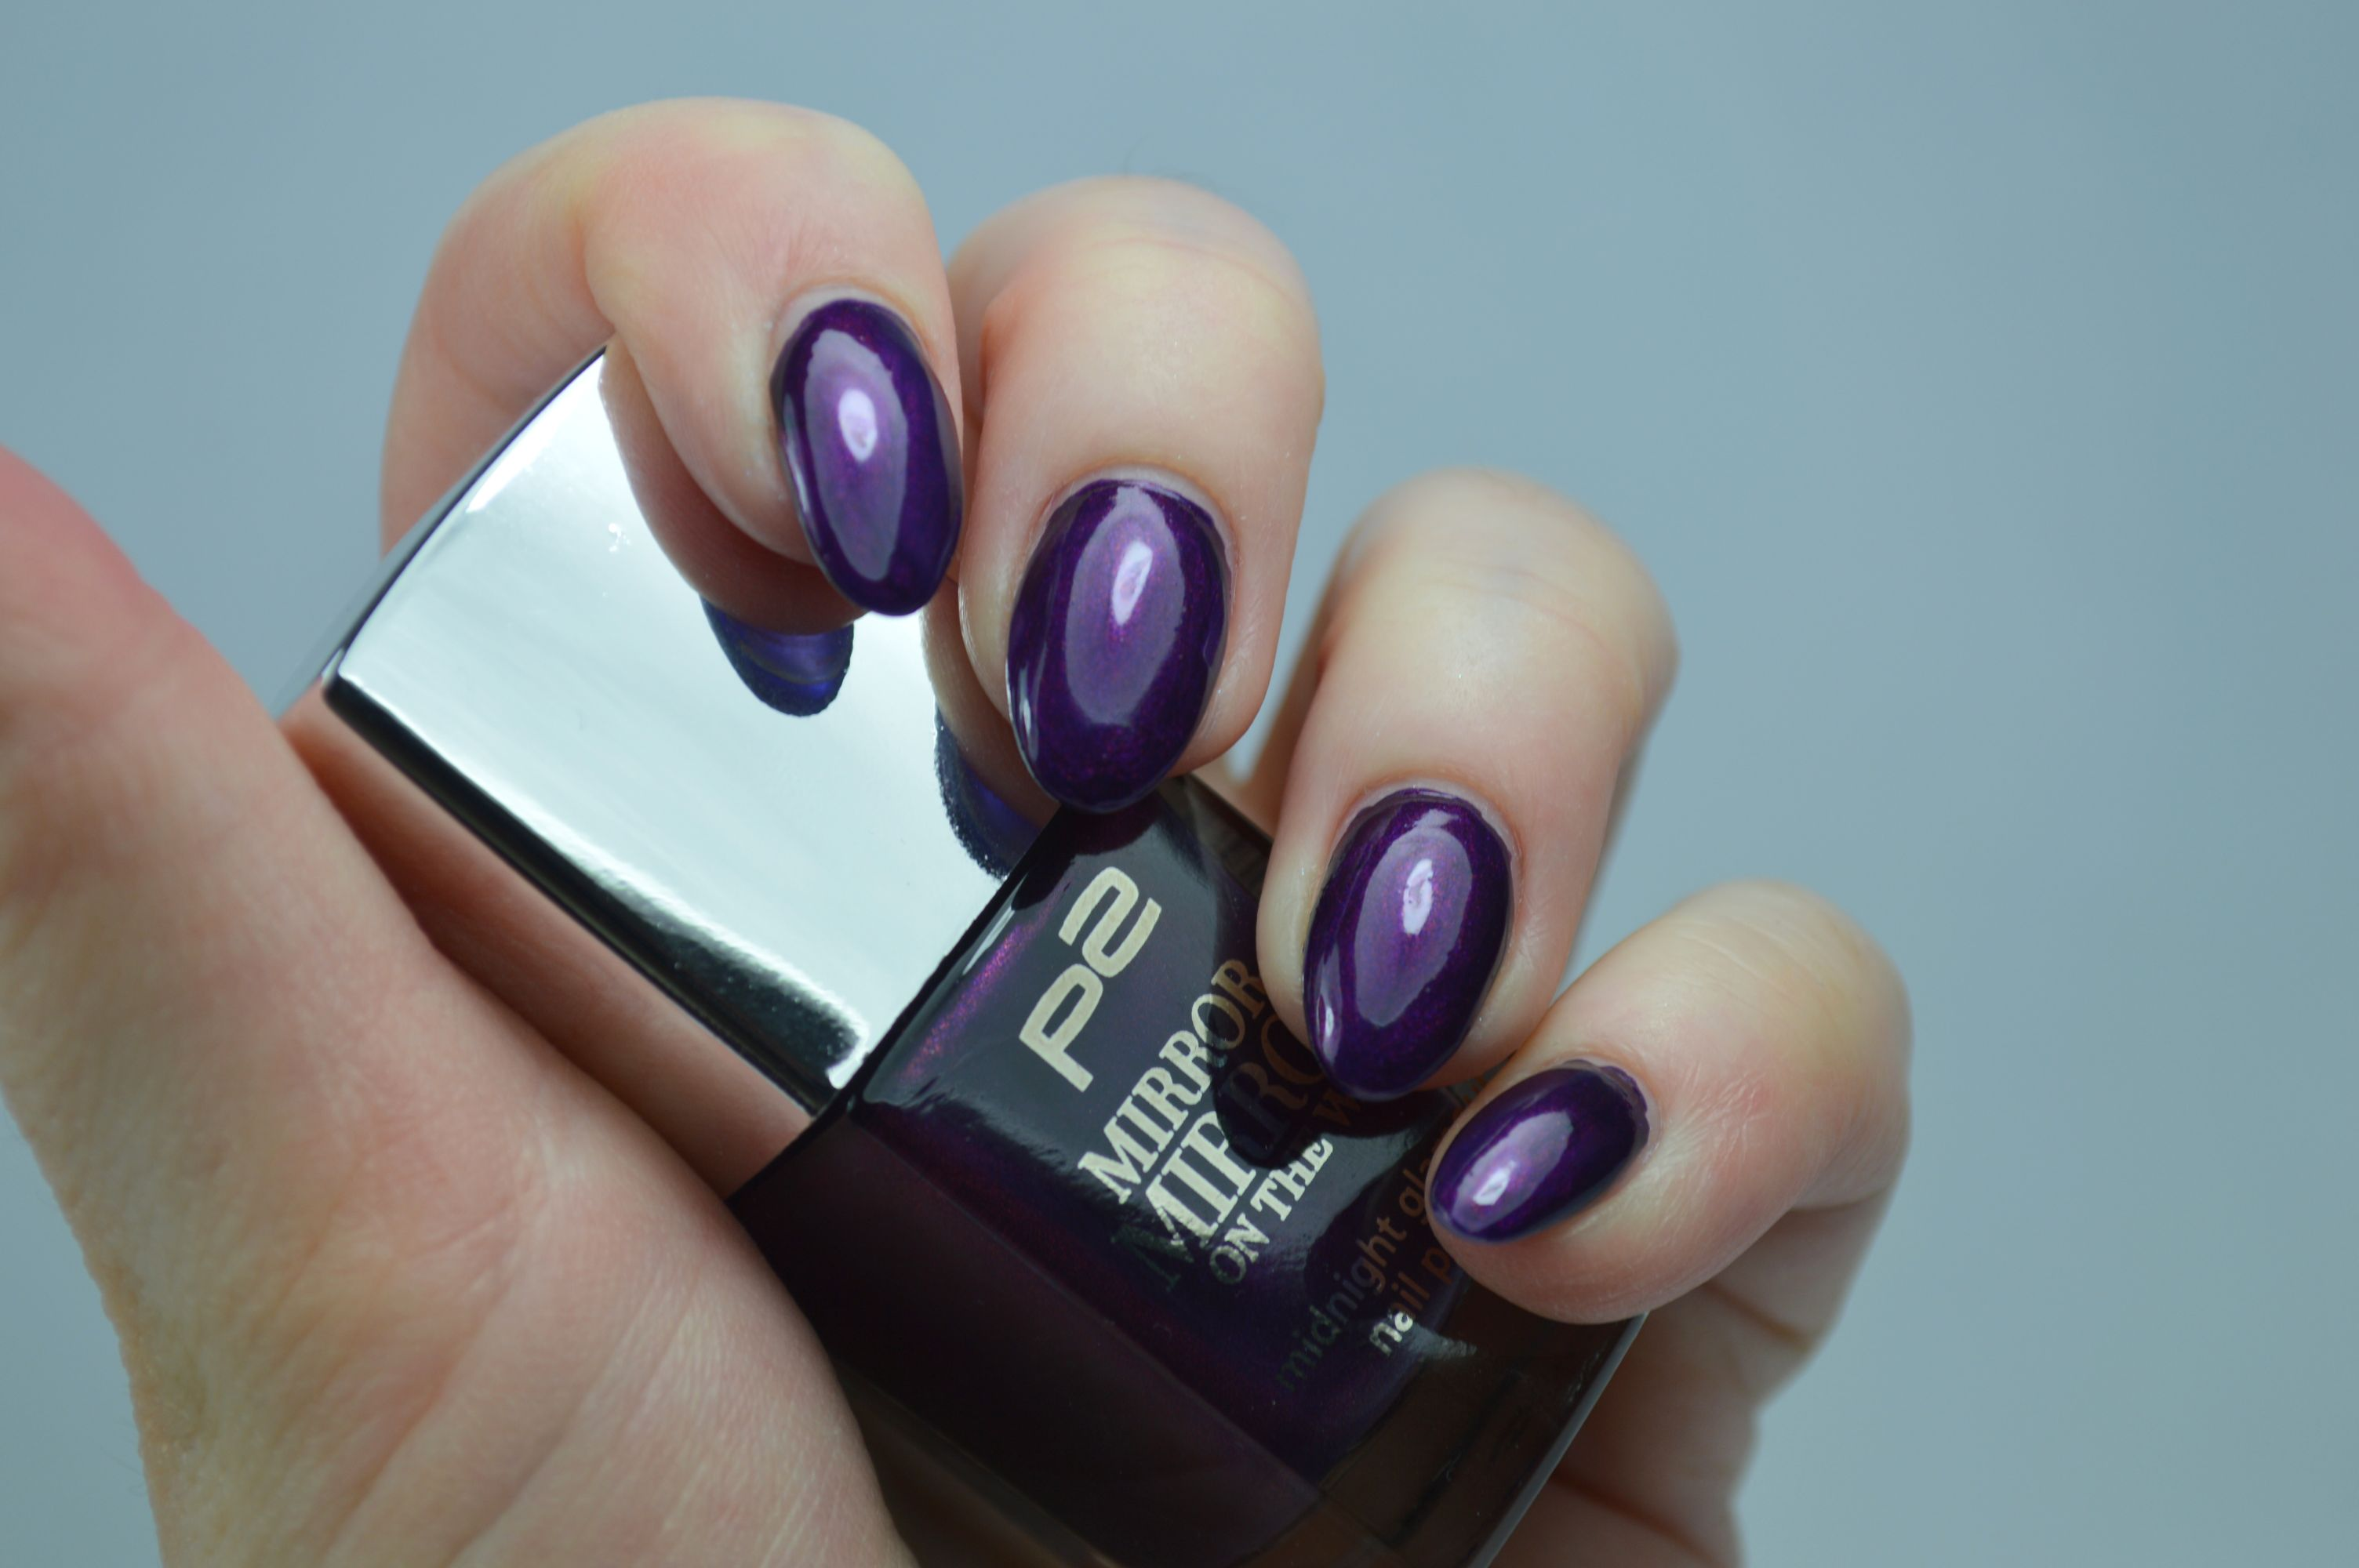 P2 Sensual Purple Nagellack Swatches Review